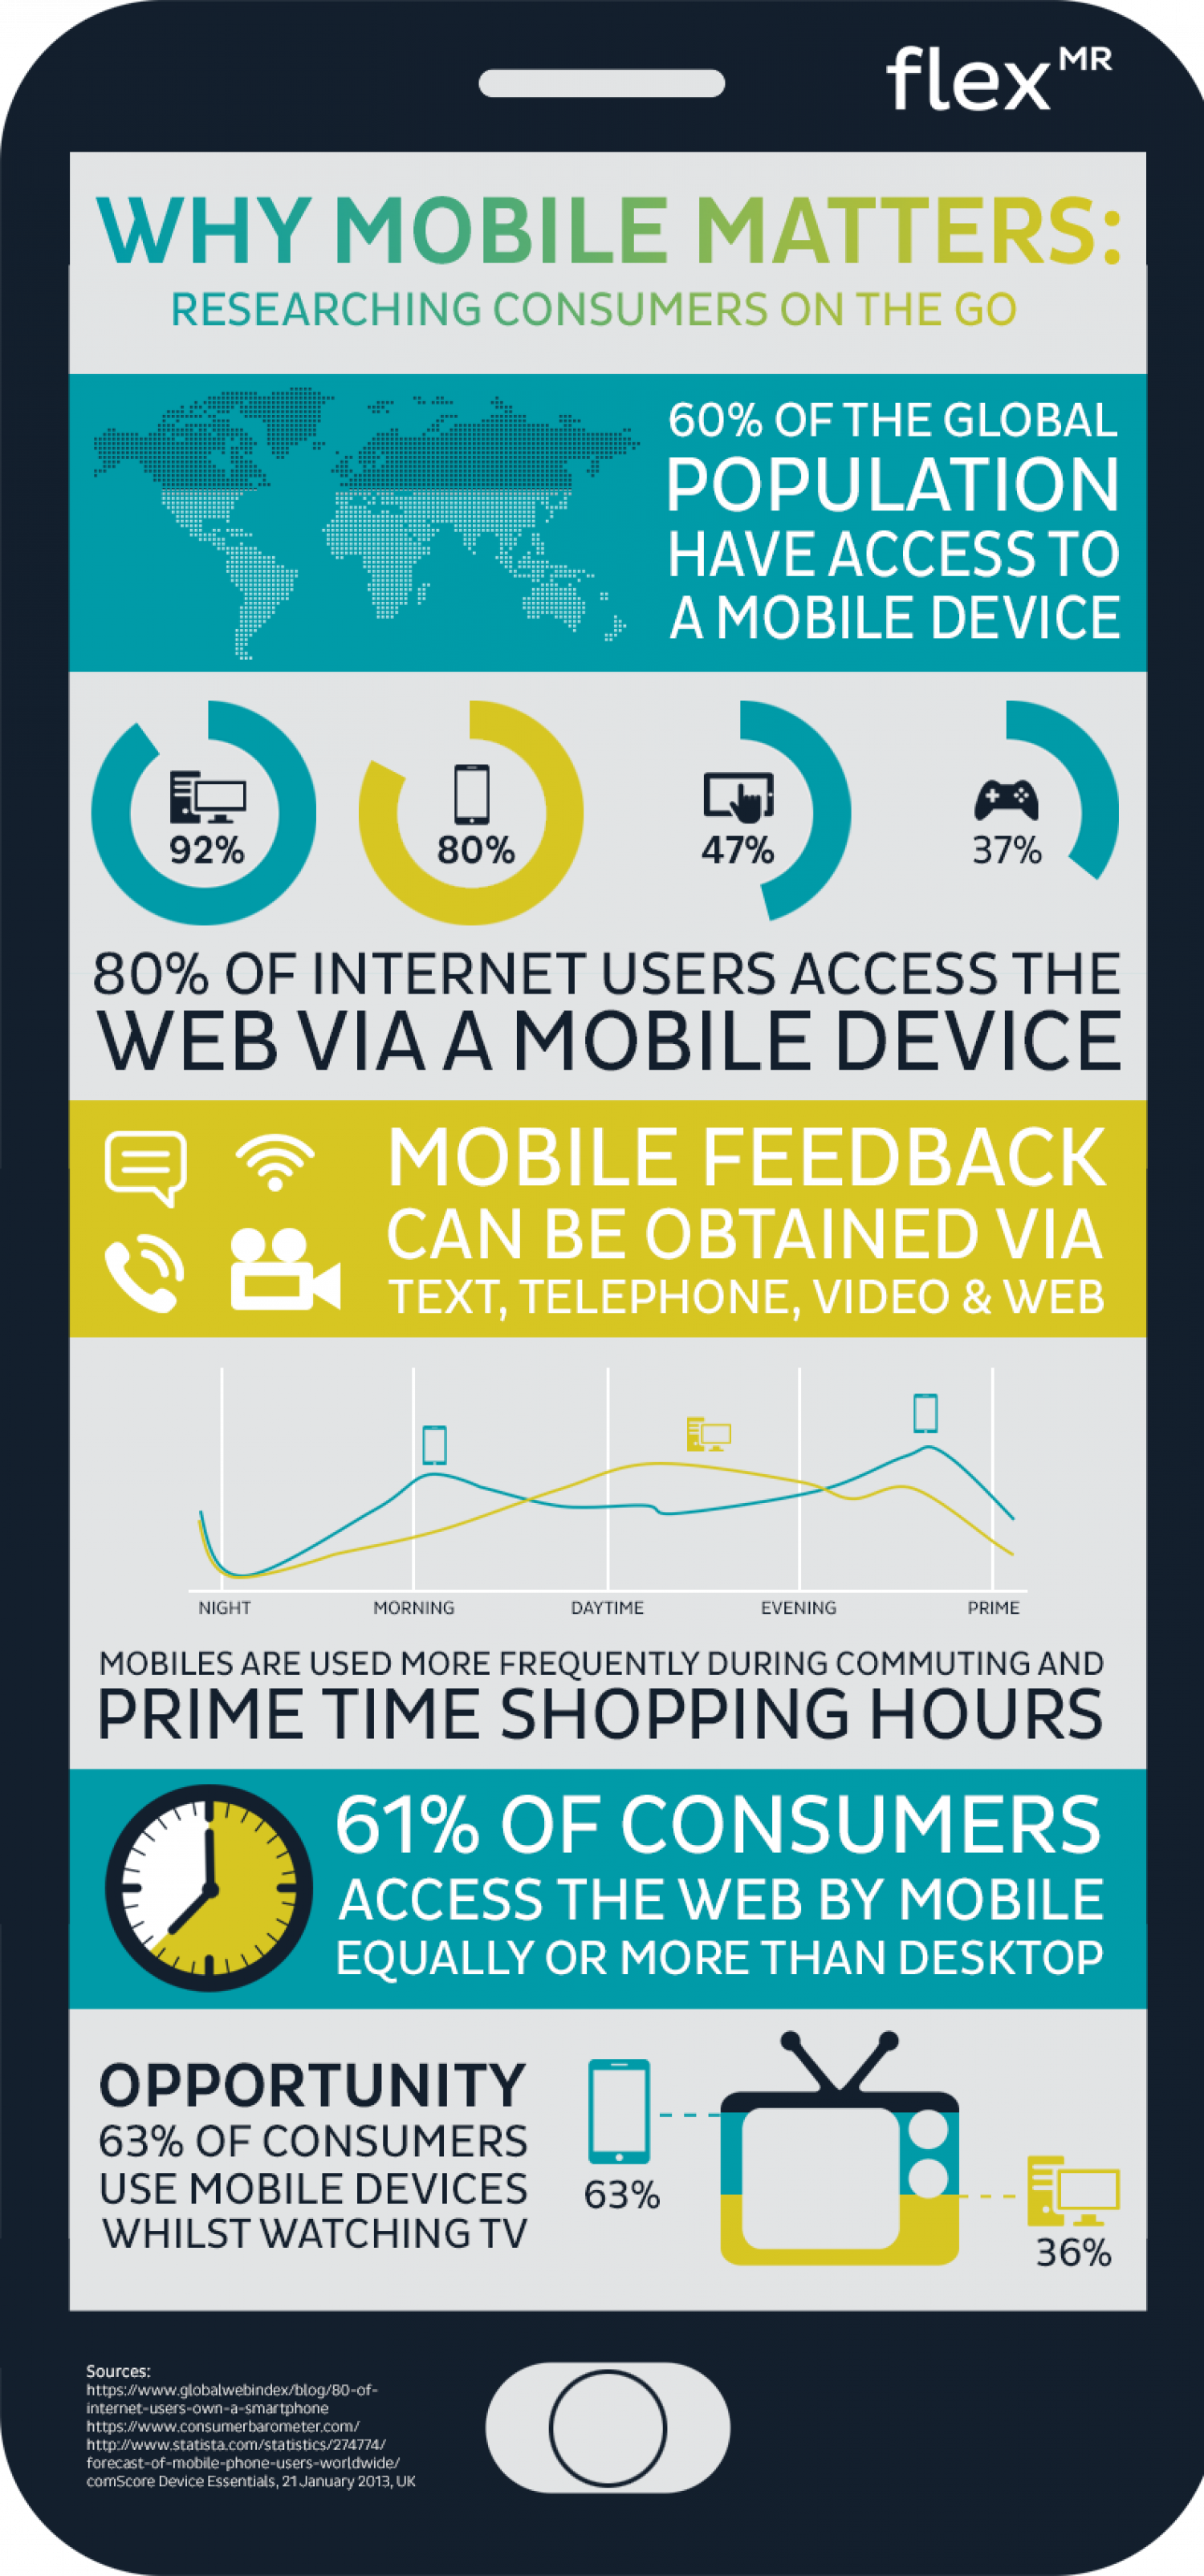 Why Mobile Matters: Researching Consumers on the Go Infographic